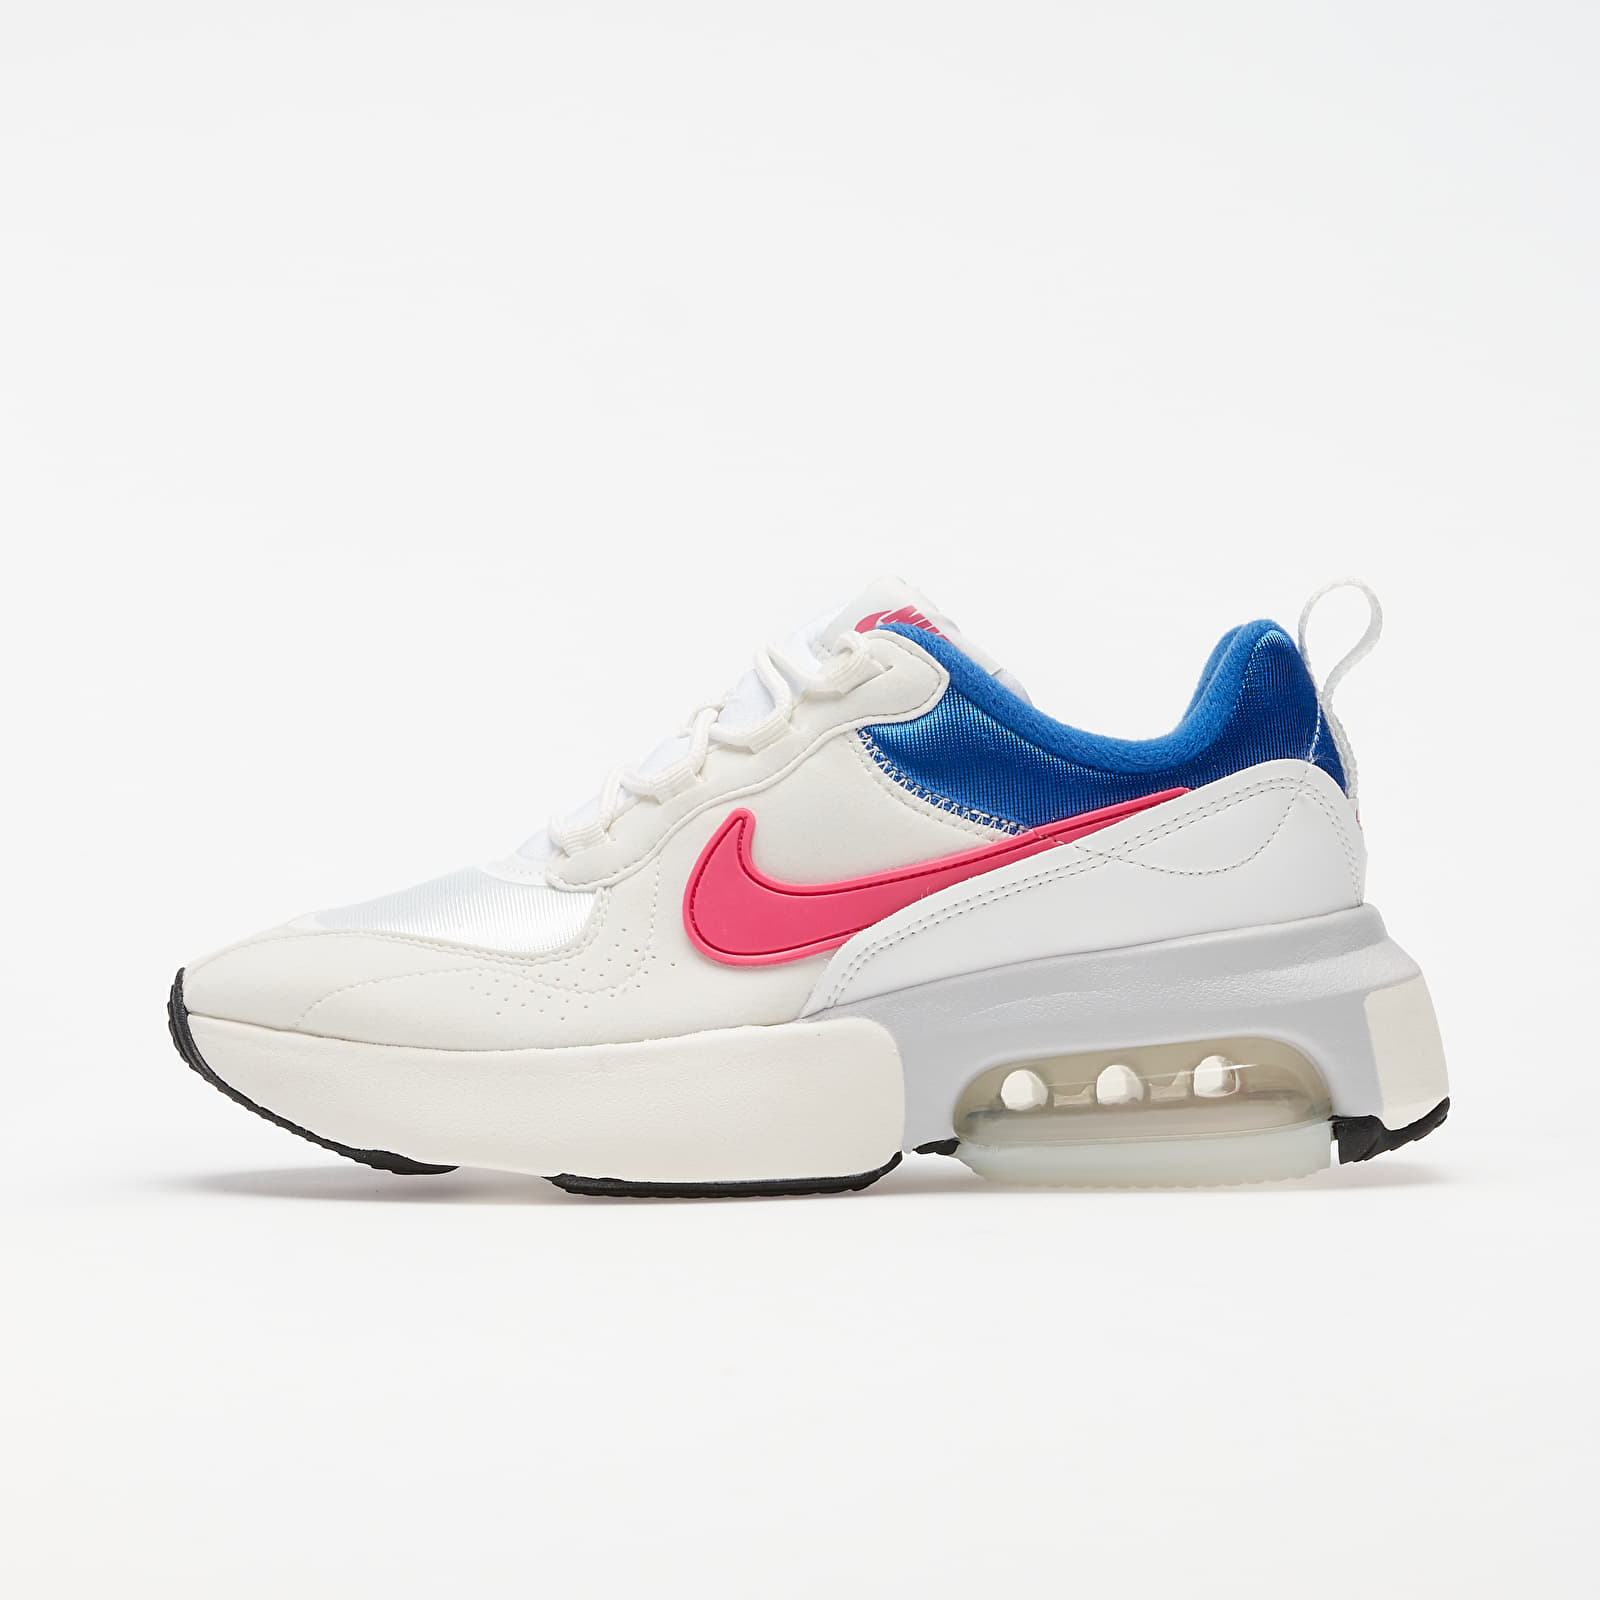 Women's shoes Nike W Air Max Verona Summit White/ Watermelon-Game Royal